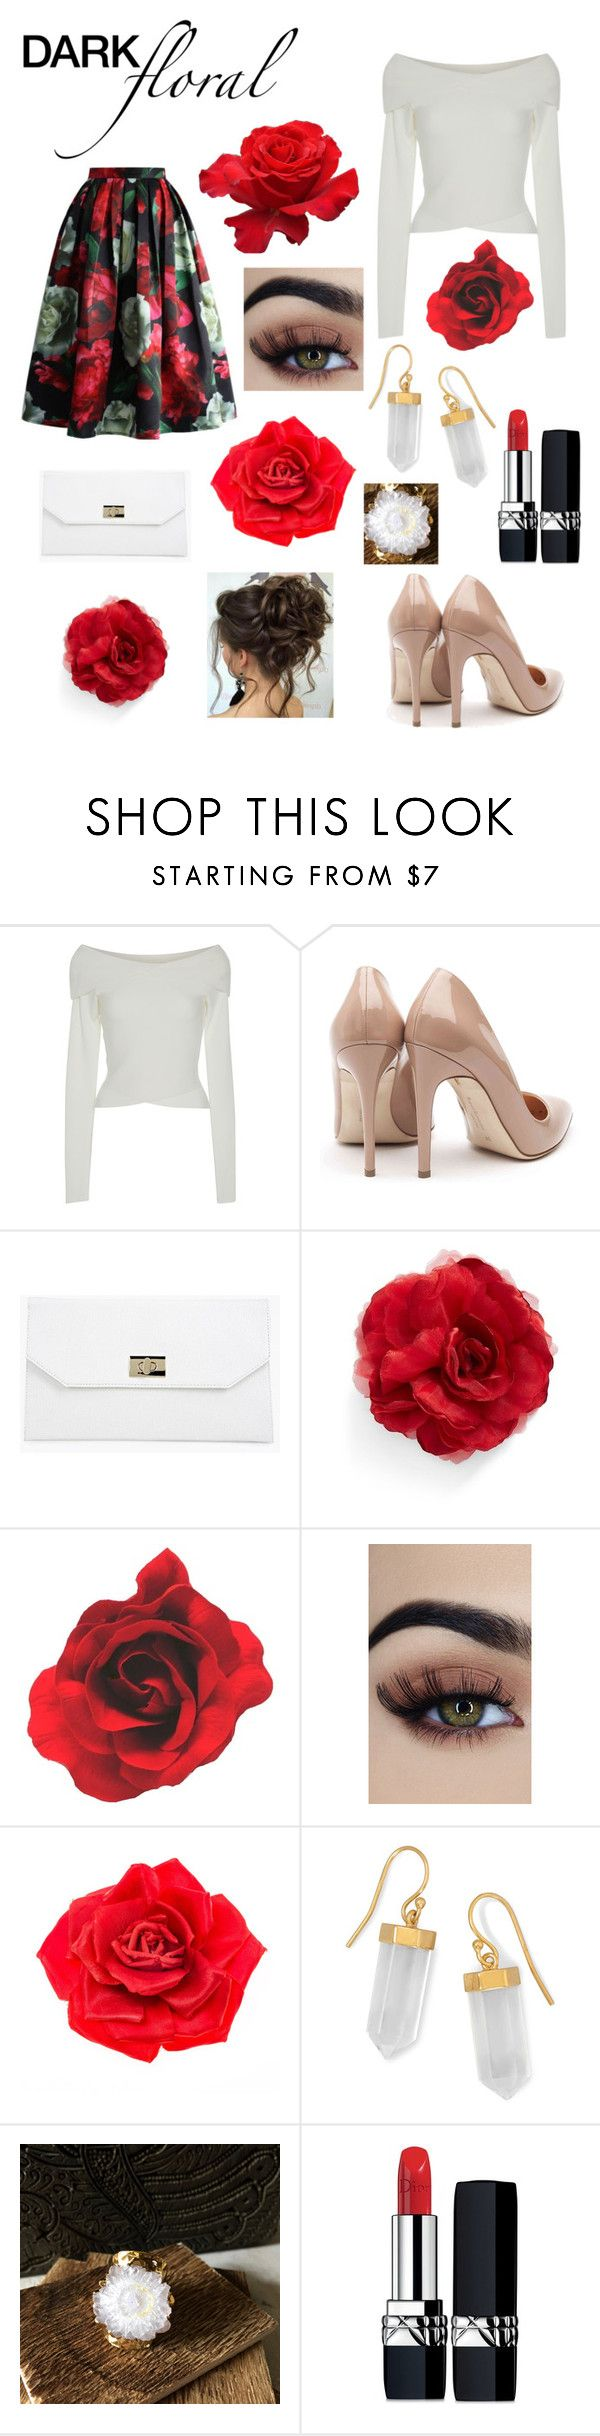 """""""In Bloom: Dark Florals"""" by bindisydney ❤ liked on Polyvore featuring A.L.C., Rupert Sanderson, Boohoo, Cara, Johnny Loves Rosie, BillyTheTree, Christian Dior and darkflorals"""